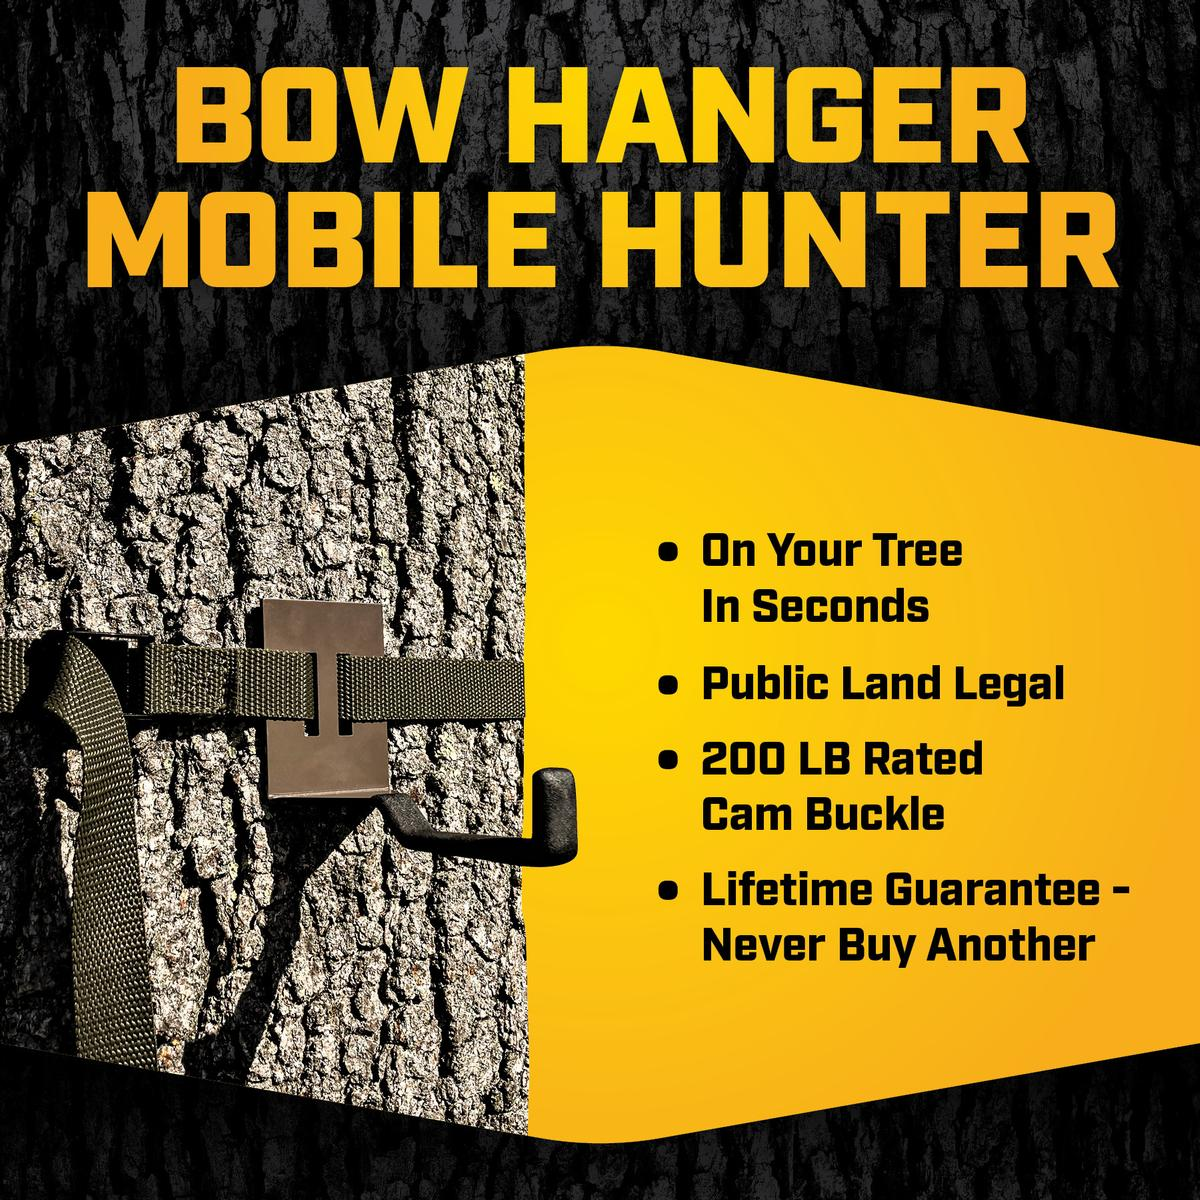 BOW HANGER MOBILE HUNTER